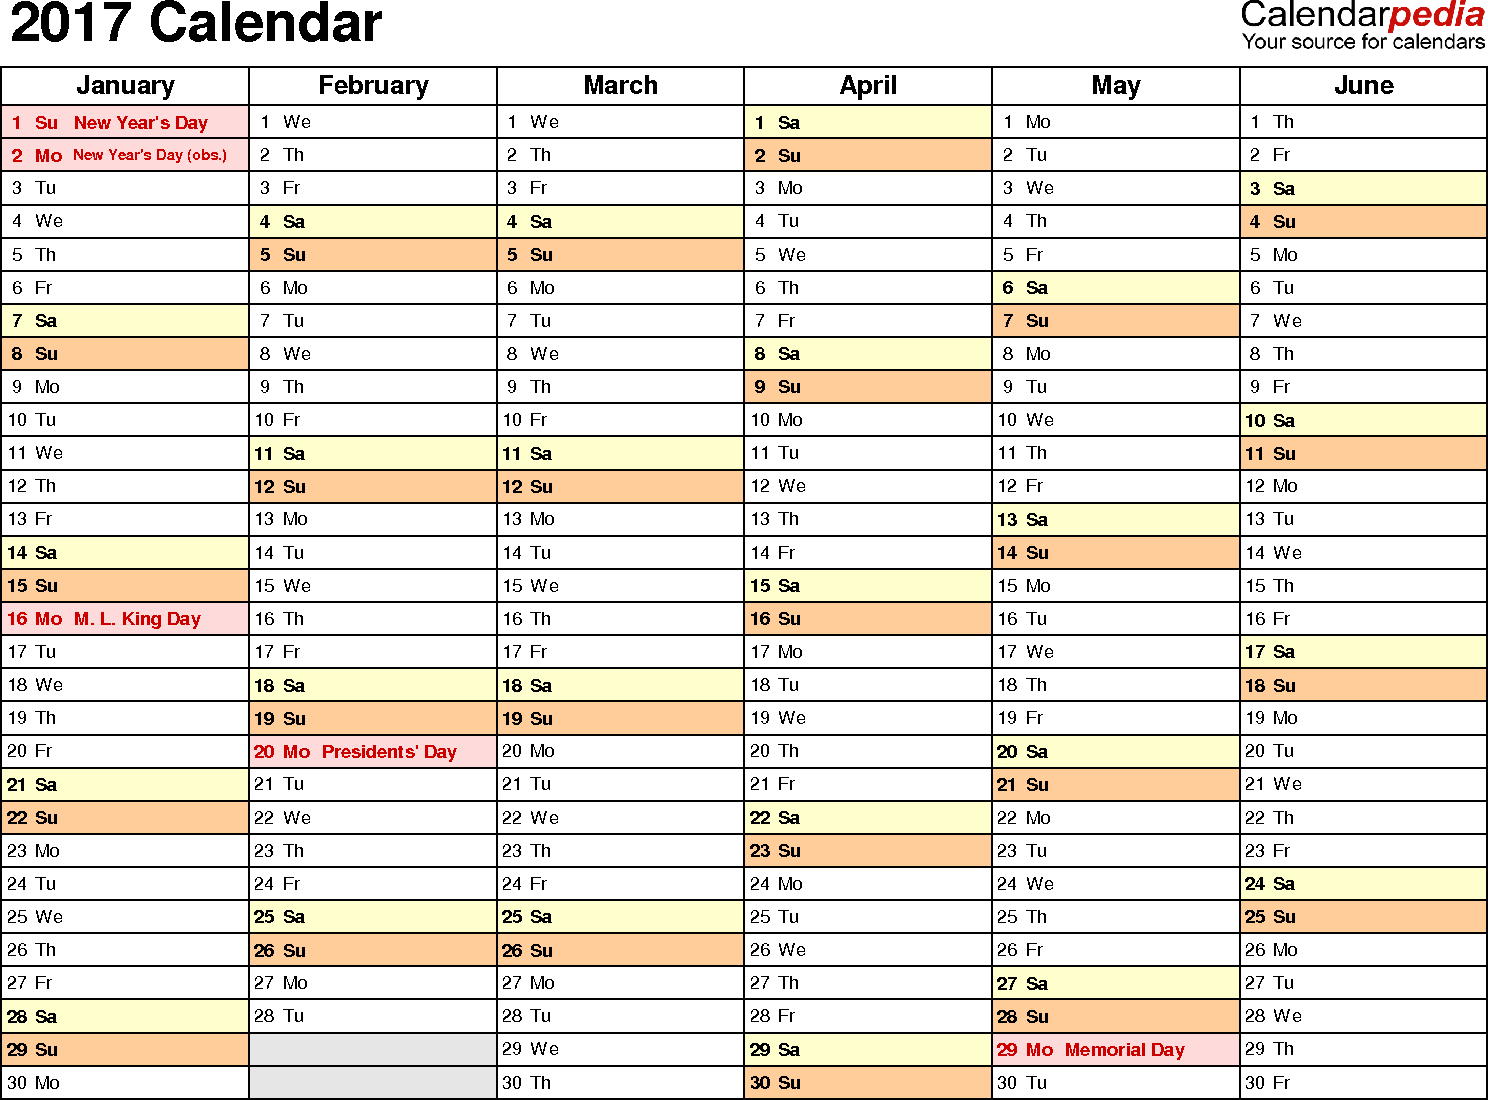 Ediblewildsus  Outstanding  Calendar  Download  Free Printable Excel Templates Xls With Foxy Template   Calendar For Excel Months Horizontally  Pages Landscape Orientation With Divine Adding Two Columns In Excel Also Add Password To Excel File In Addition Excel Basics Tutorial And D Pie Chart Excel As Well As How To Create Macros In Excel  Additionally Convert Excel File To Csv From Calendarpediacom With Ediblewildsus  Foxy  Calendar  Download  Free Printable Excel Templates Xls With Divine Template   Calendar For Excel Months Horizontally  Pages Landscape Orientation And Outstanding Adding Two Columns In Excel Also Add Password To Excel File In Addition Excel Basics Tutorial From Calendarpediacom